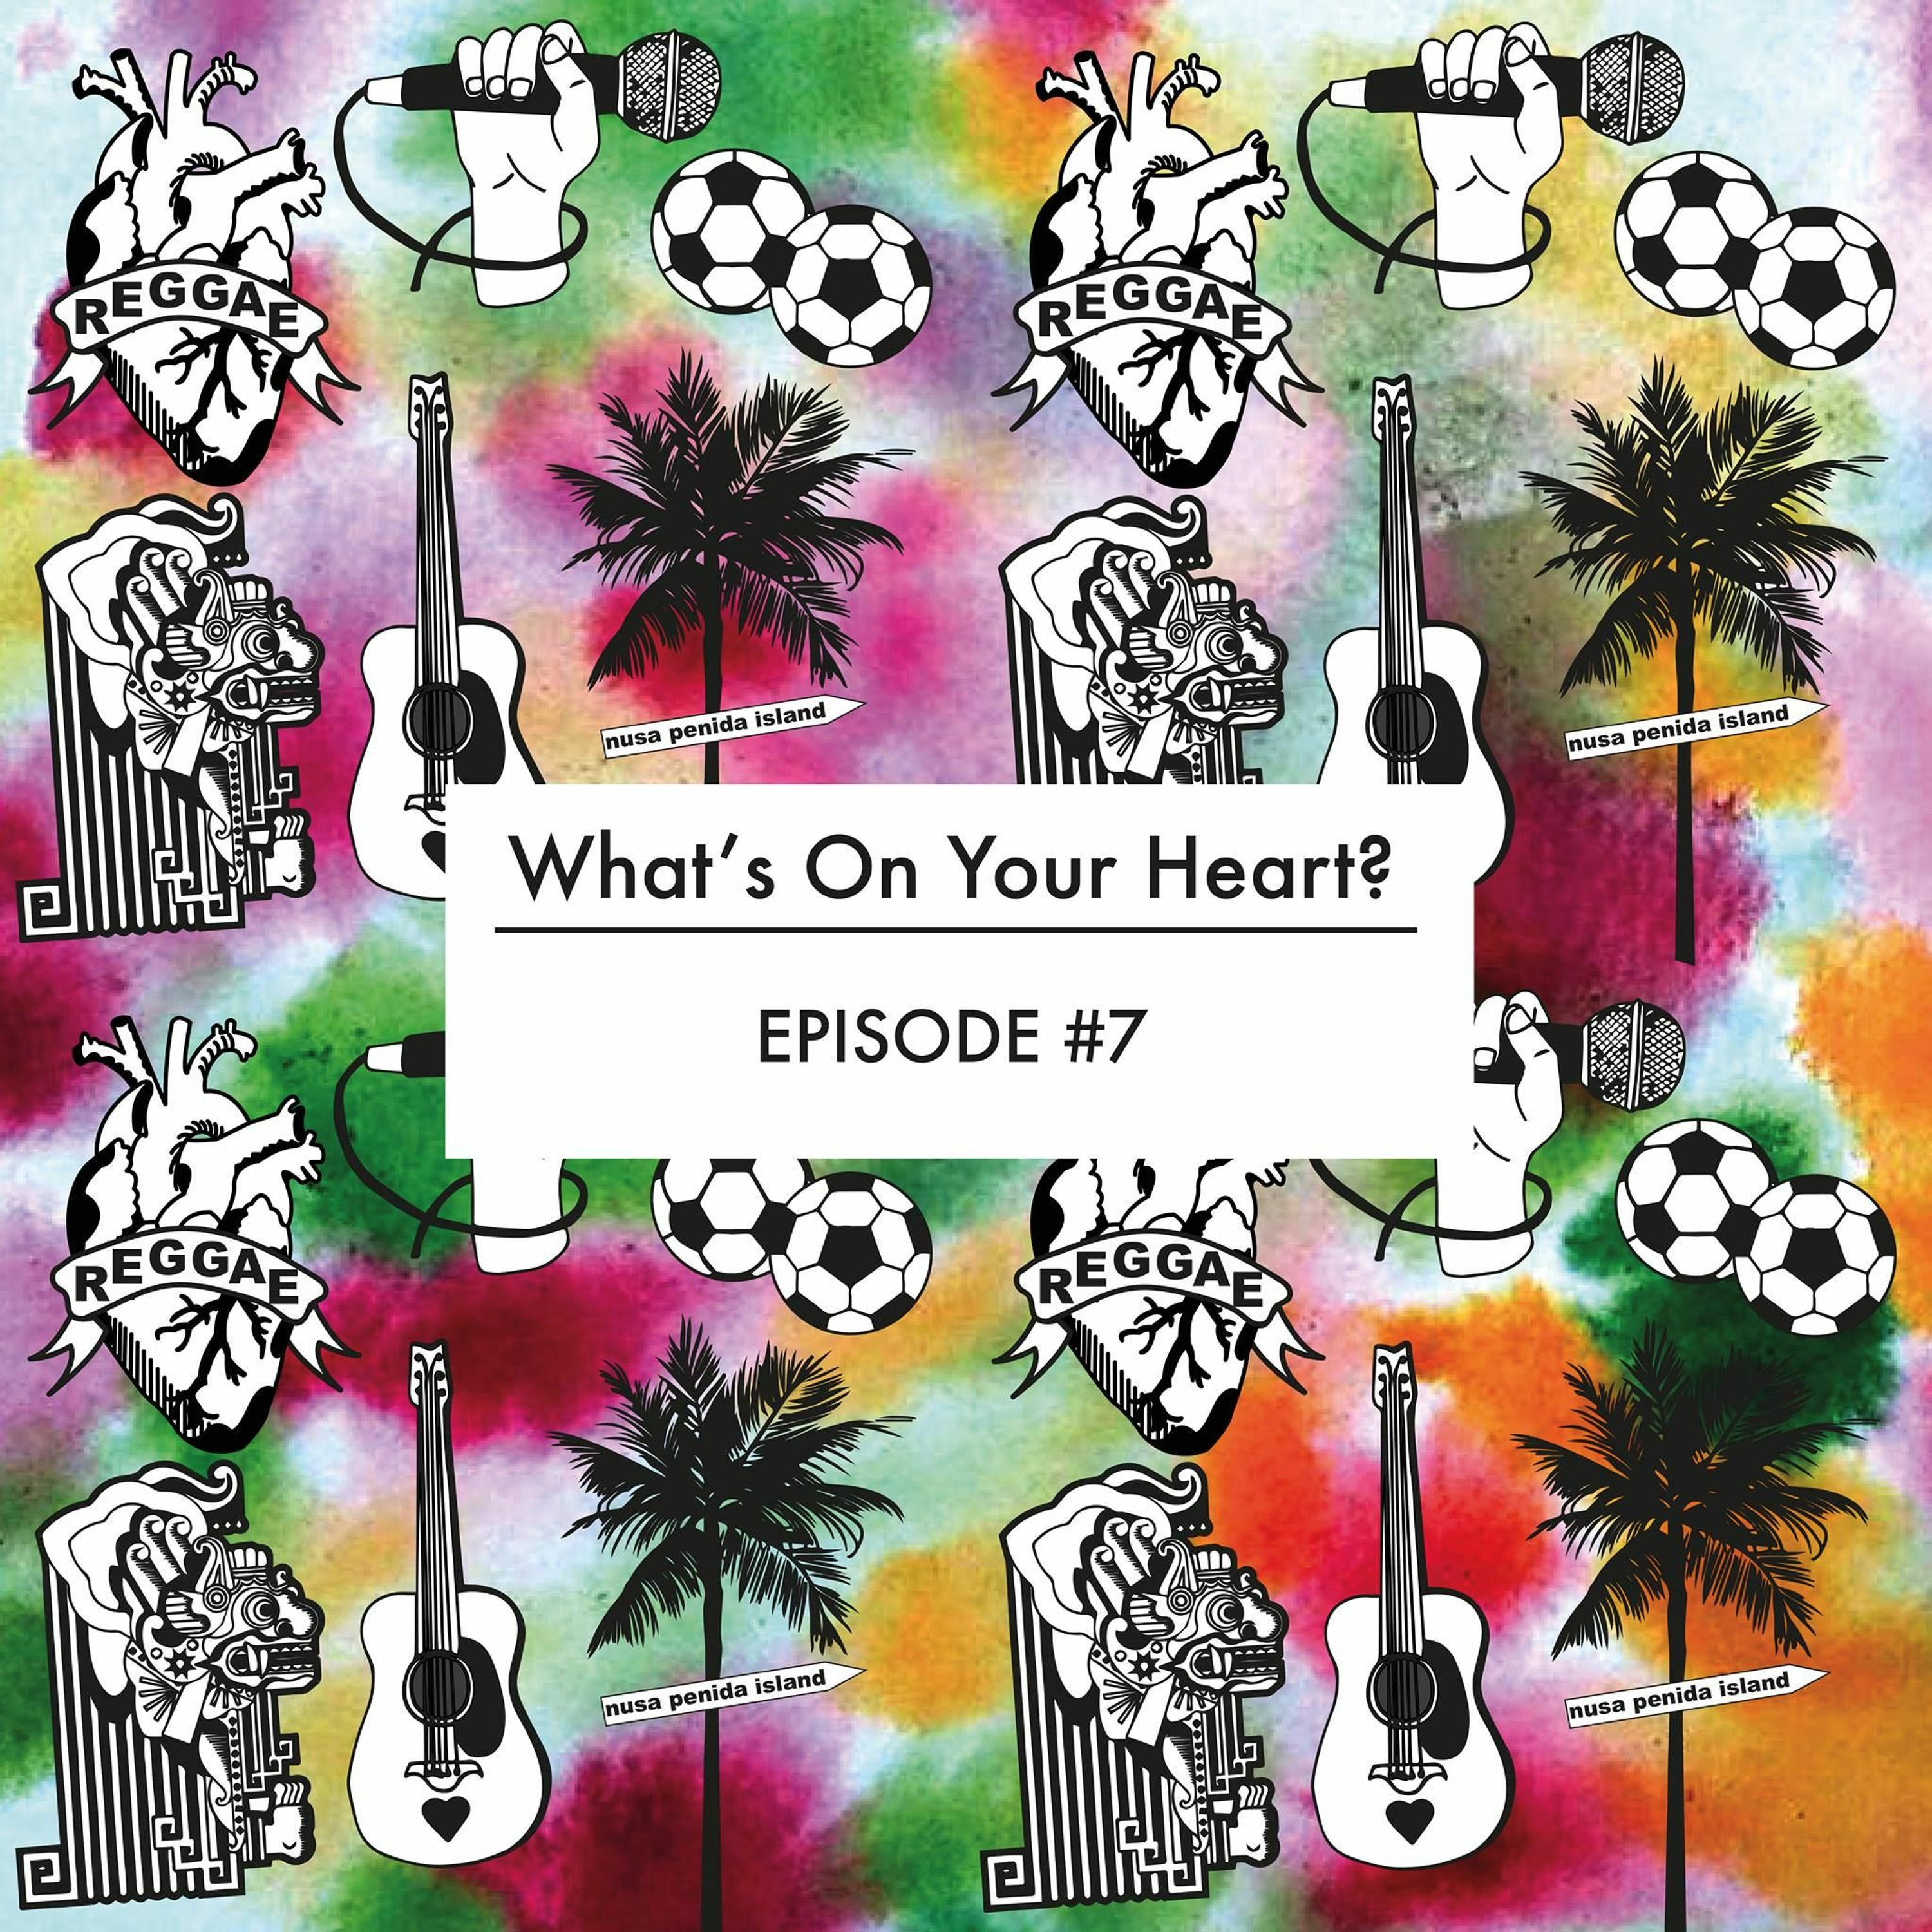 Episode 7 - What's On Your Heart?